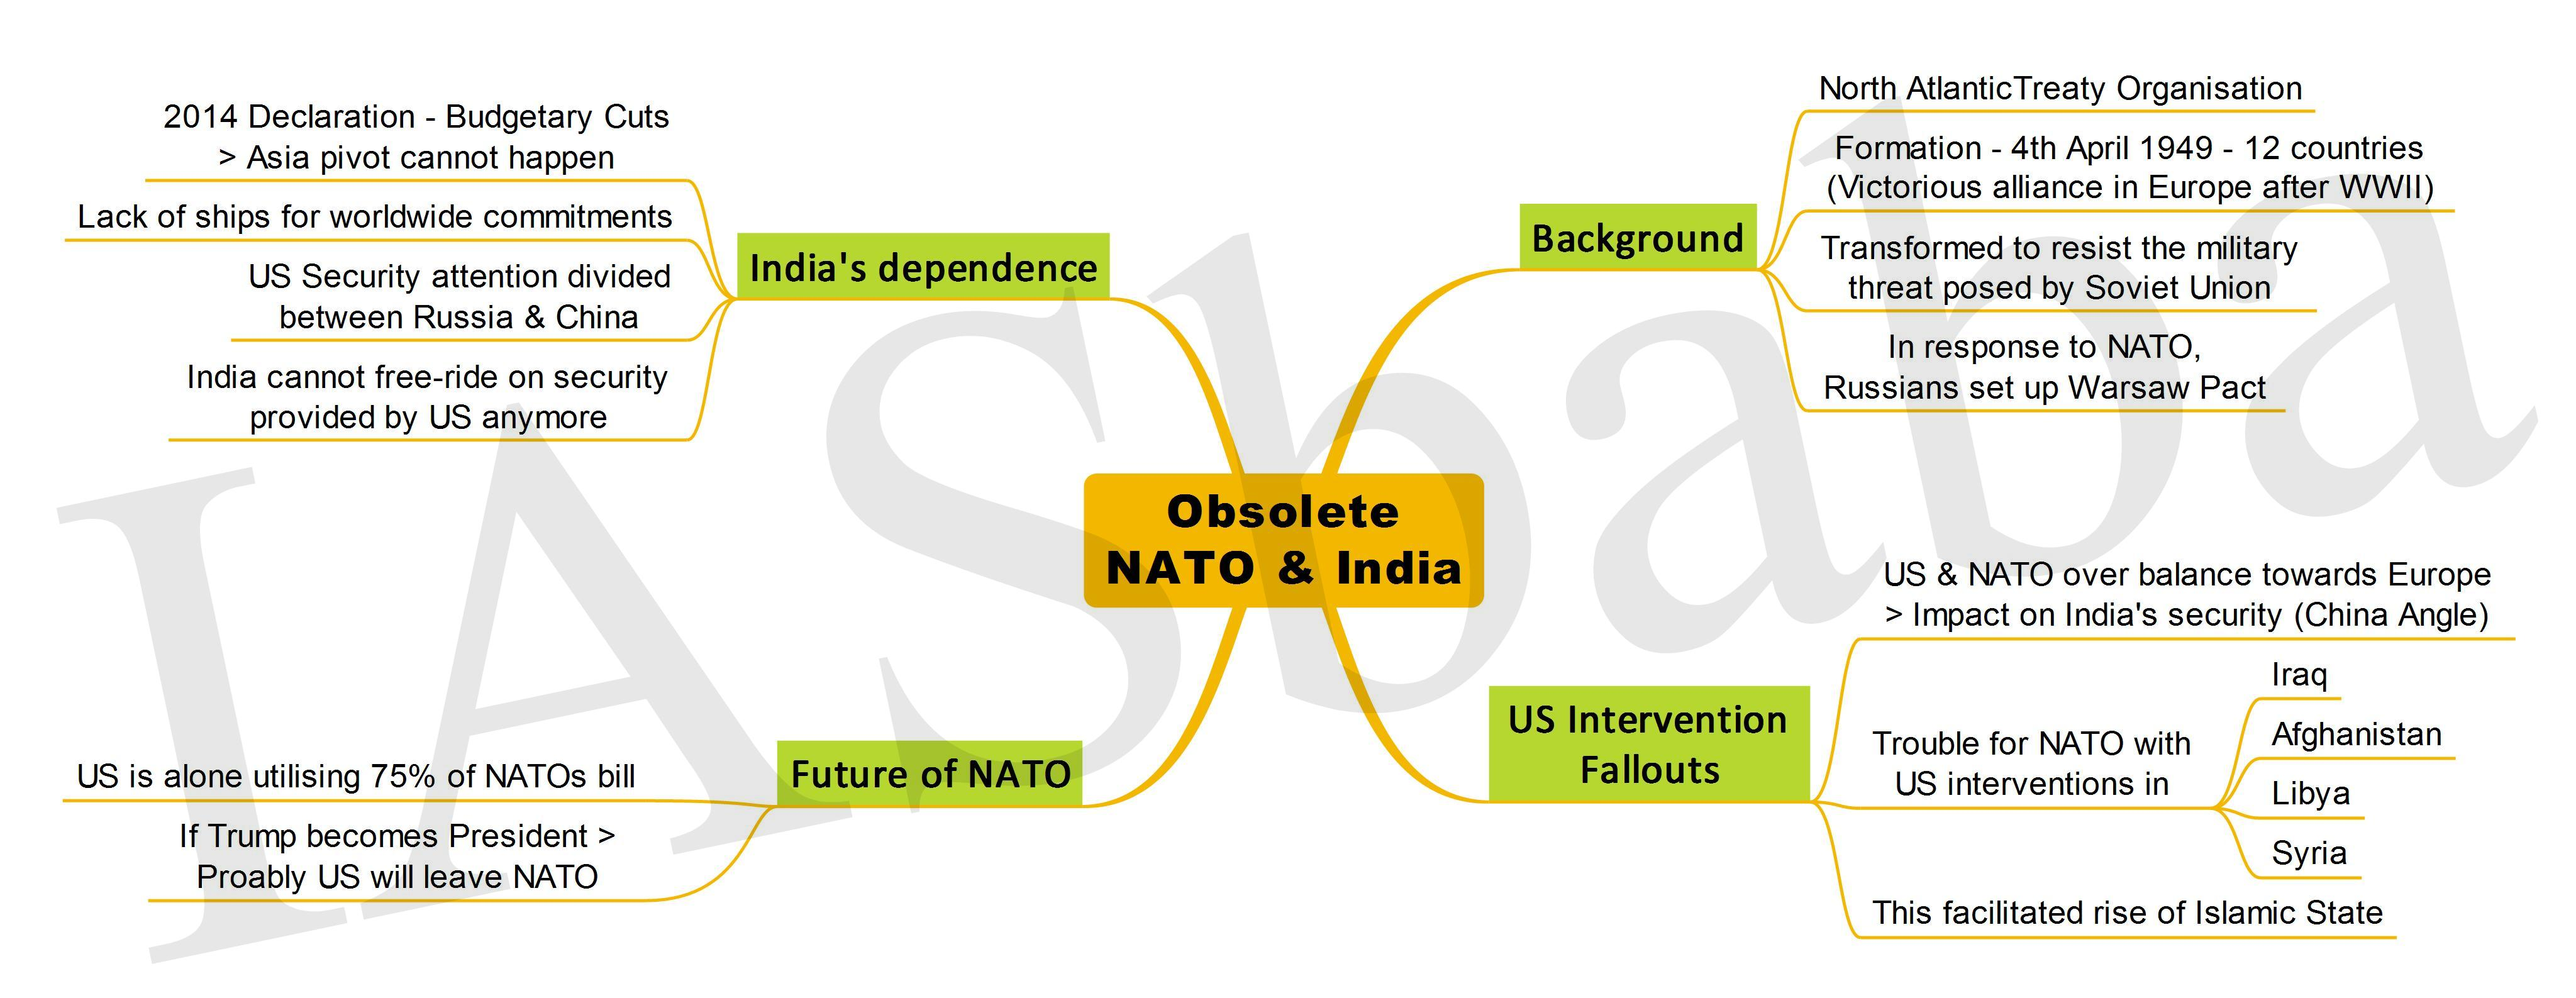 Obsolete NATO India-IASbaba